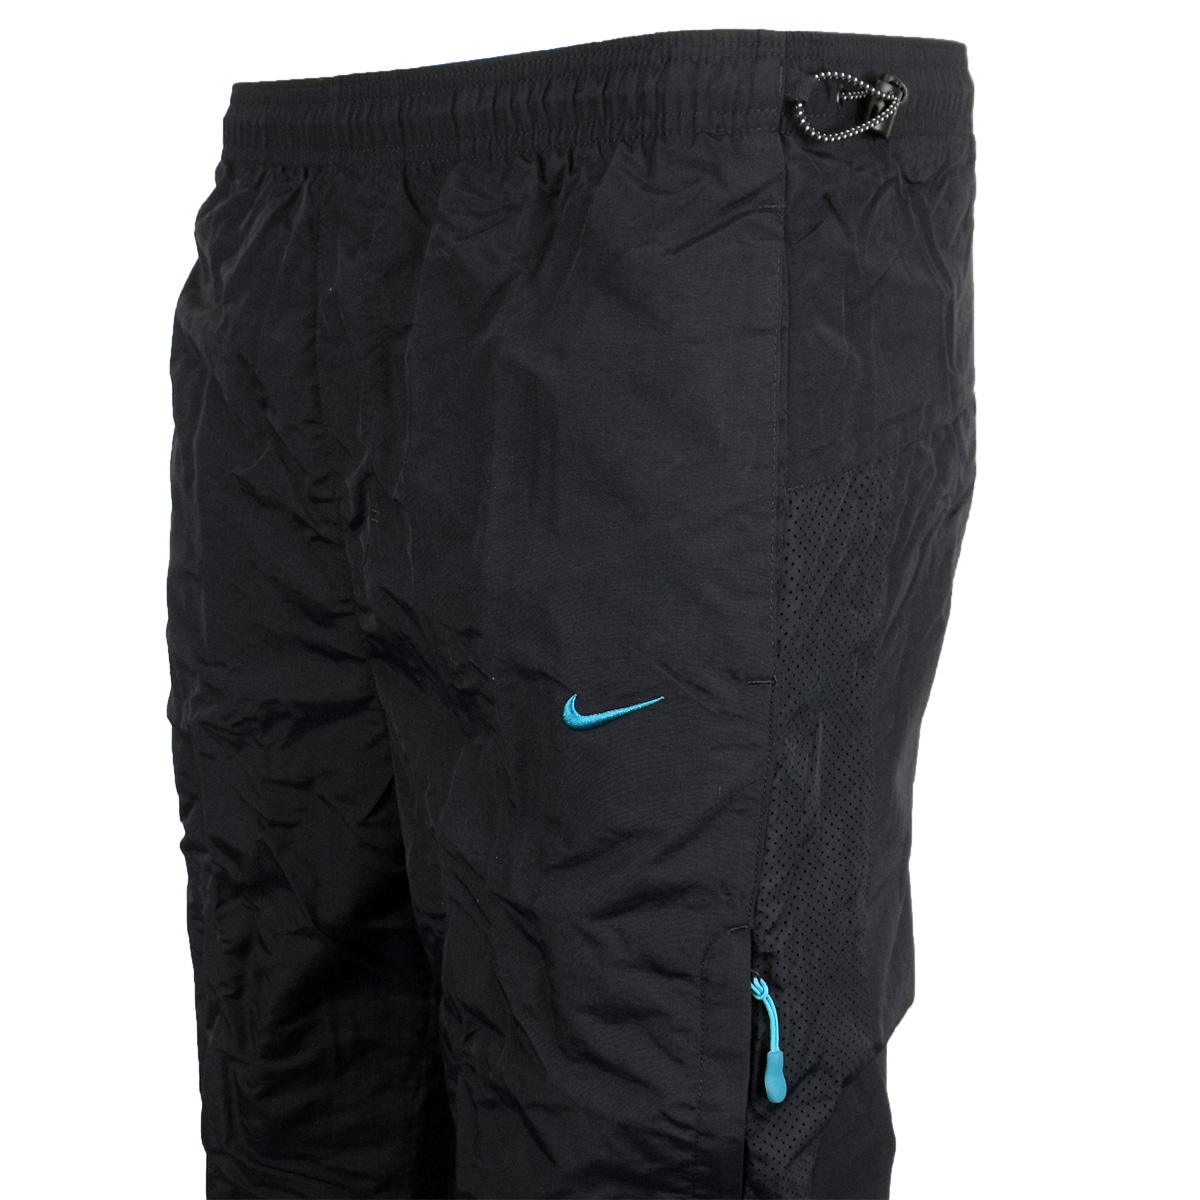 Mens-Nike-AD-Tech-Tracksuit-Track-Pant-Woven-Pants-Cuffed-Training-Bottoms